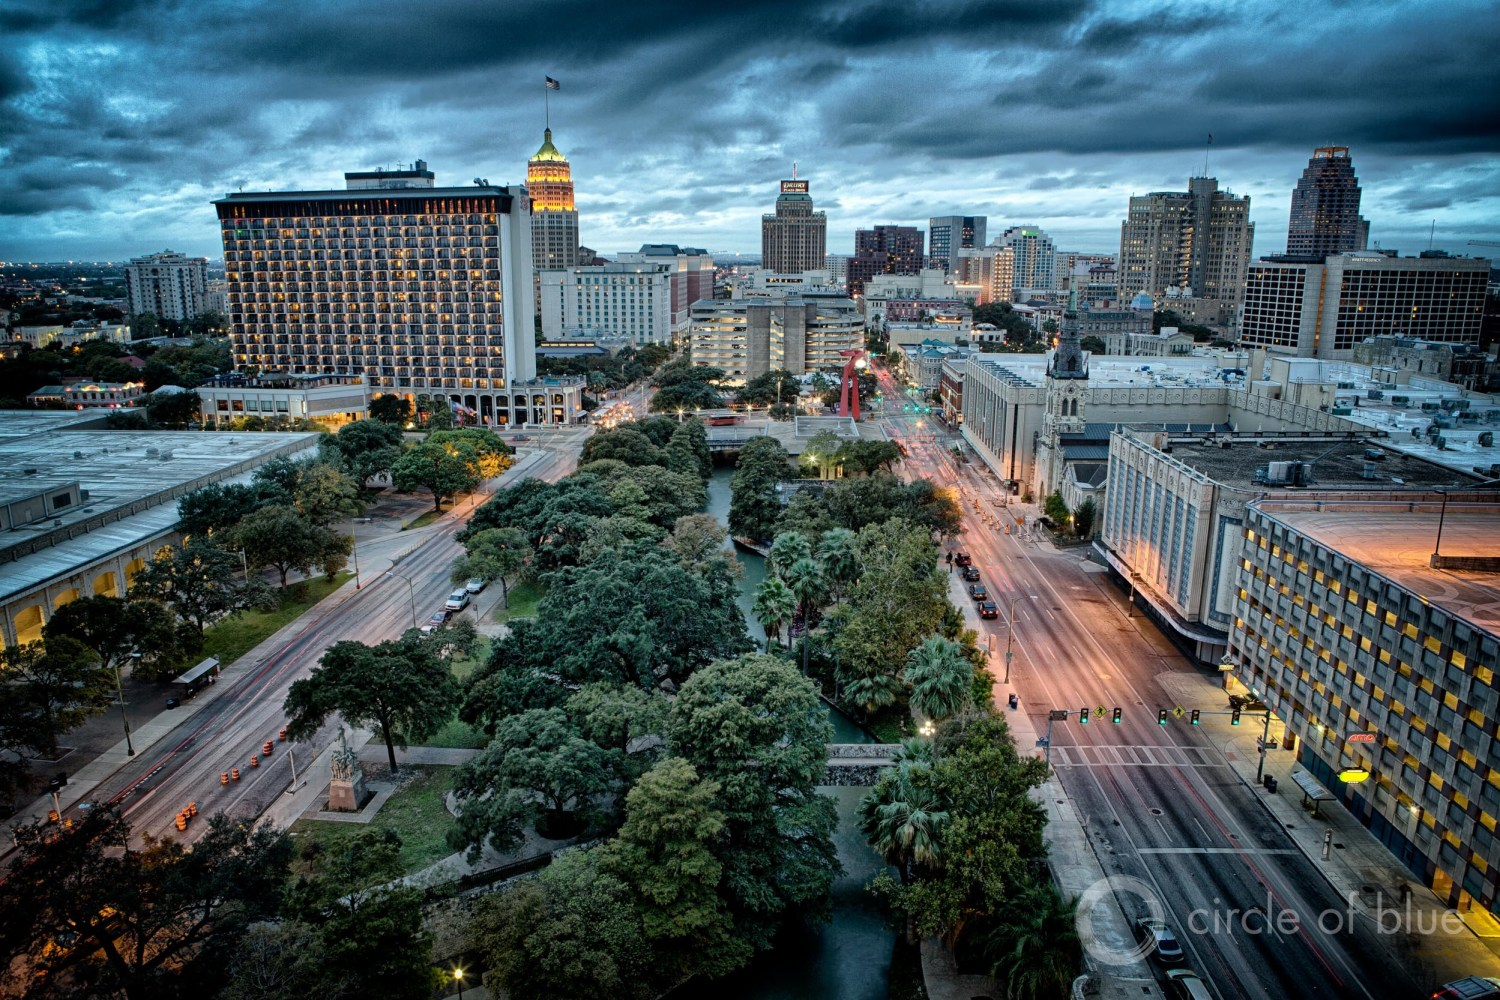 The 2017 Texas water plan forecasts a 62 percent increase in municipal water demand by 2070, driven in large part by growing metropolises such as San Antonio, pictured above. Photo © J. Carl Ganter / Circle of Blue